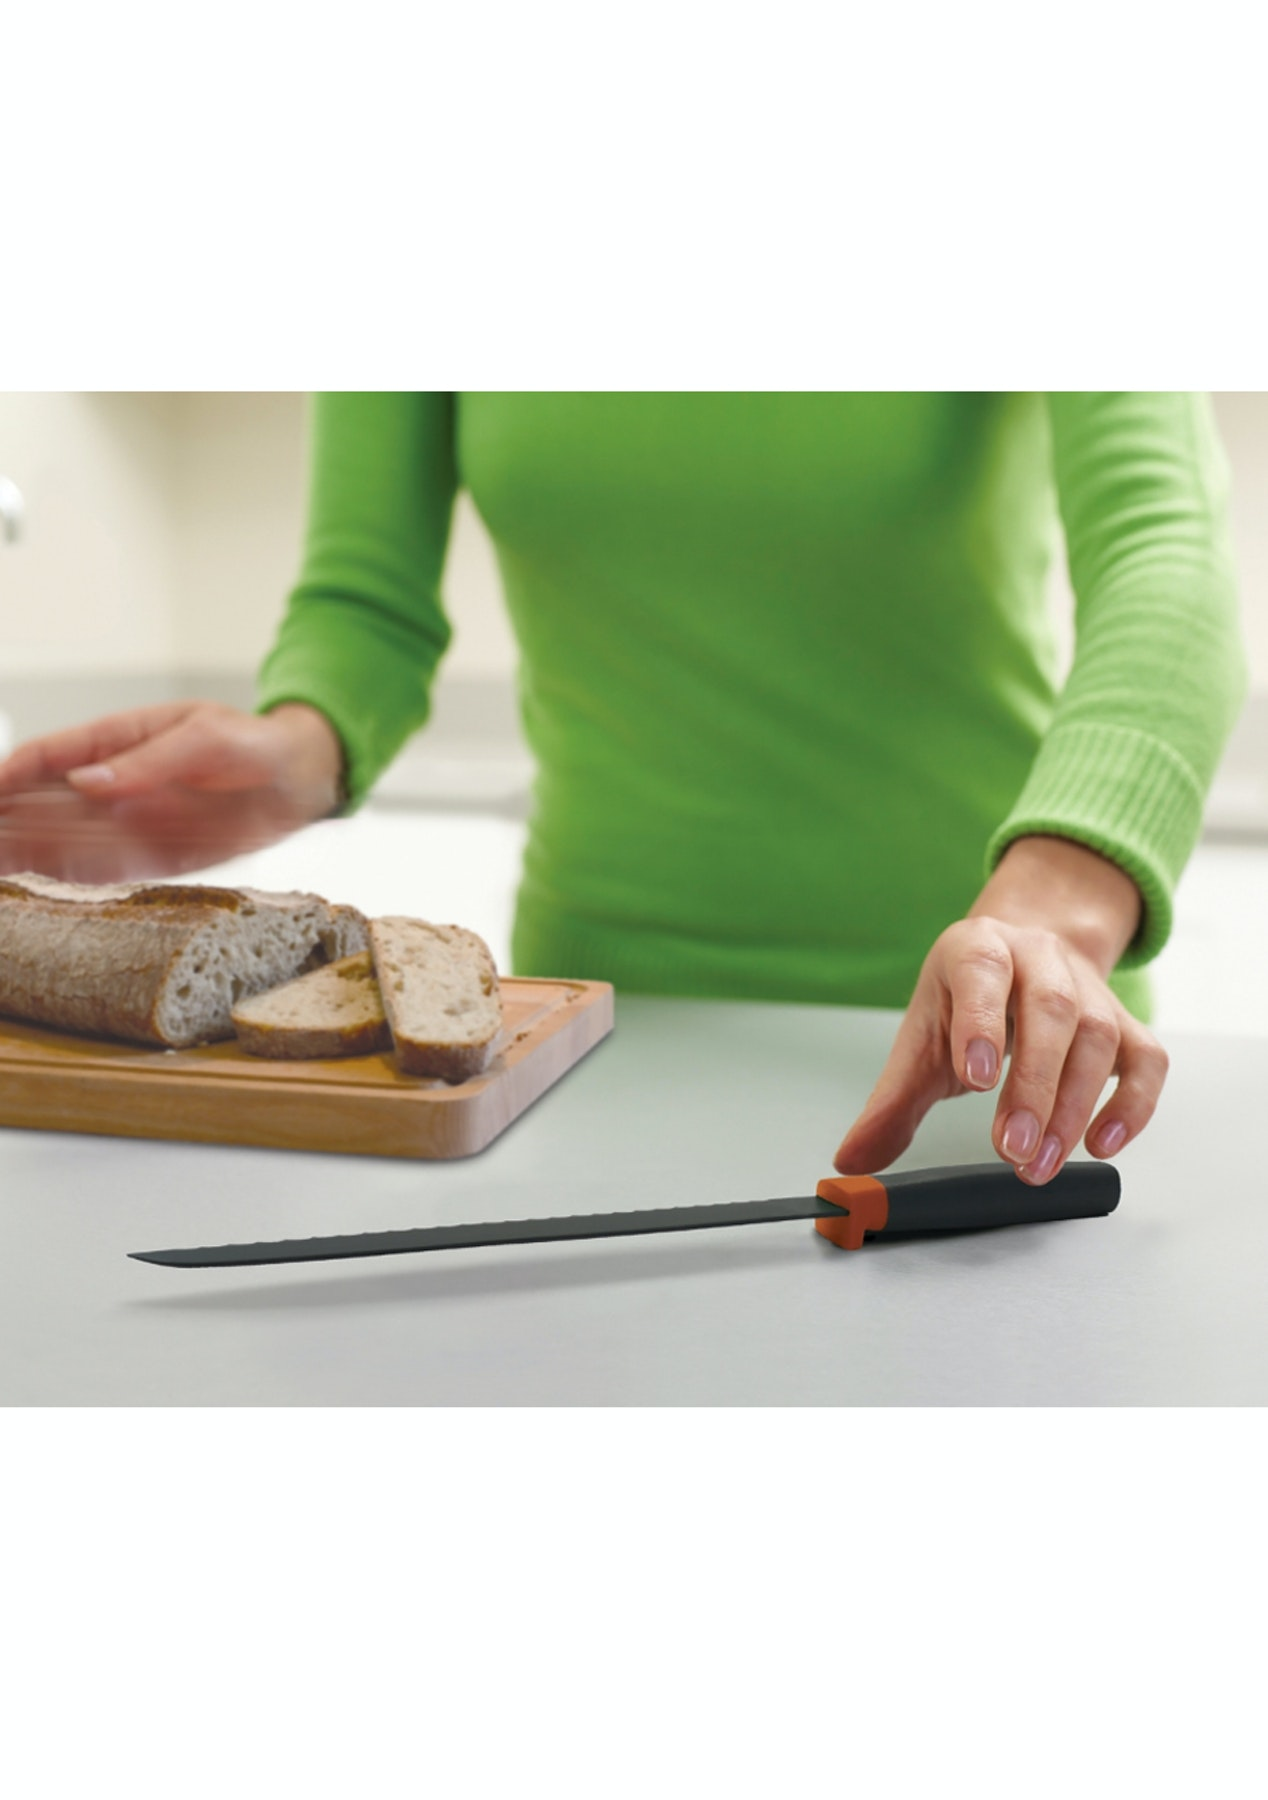 Joseph Joseph Elevate 8 Inch Bread Knife Everything For Your